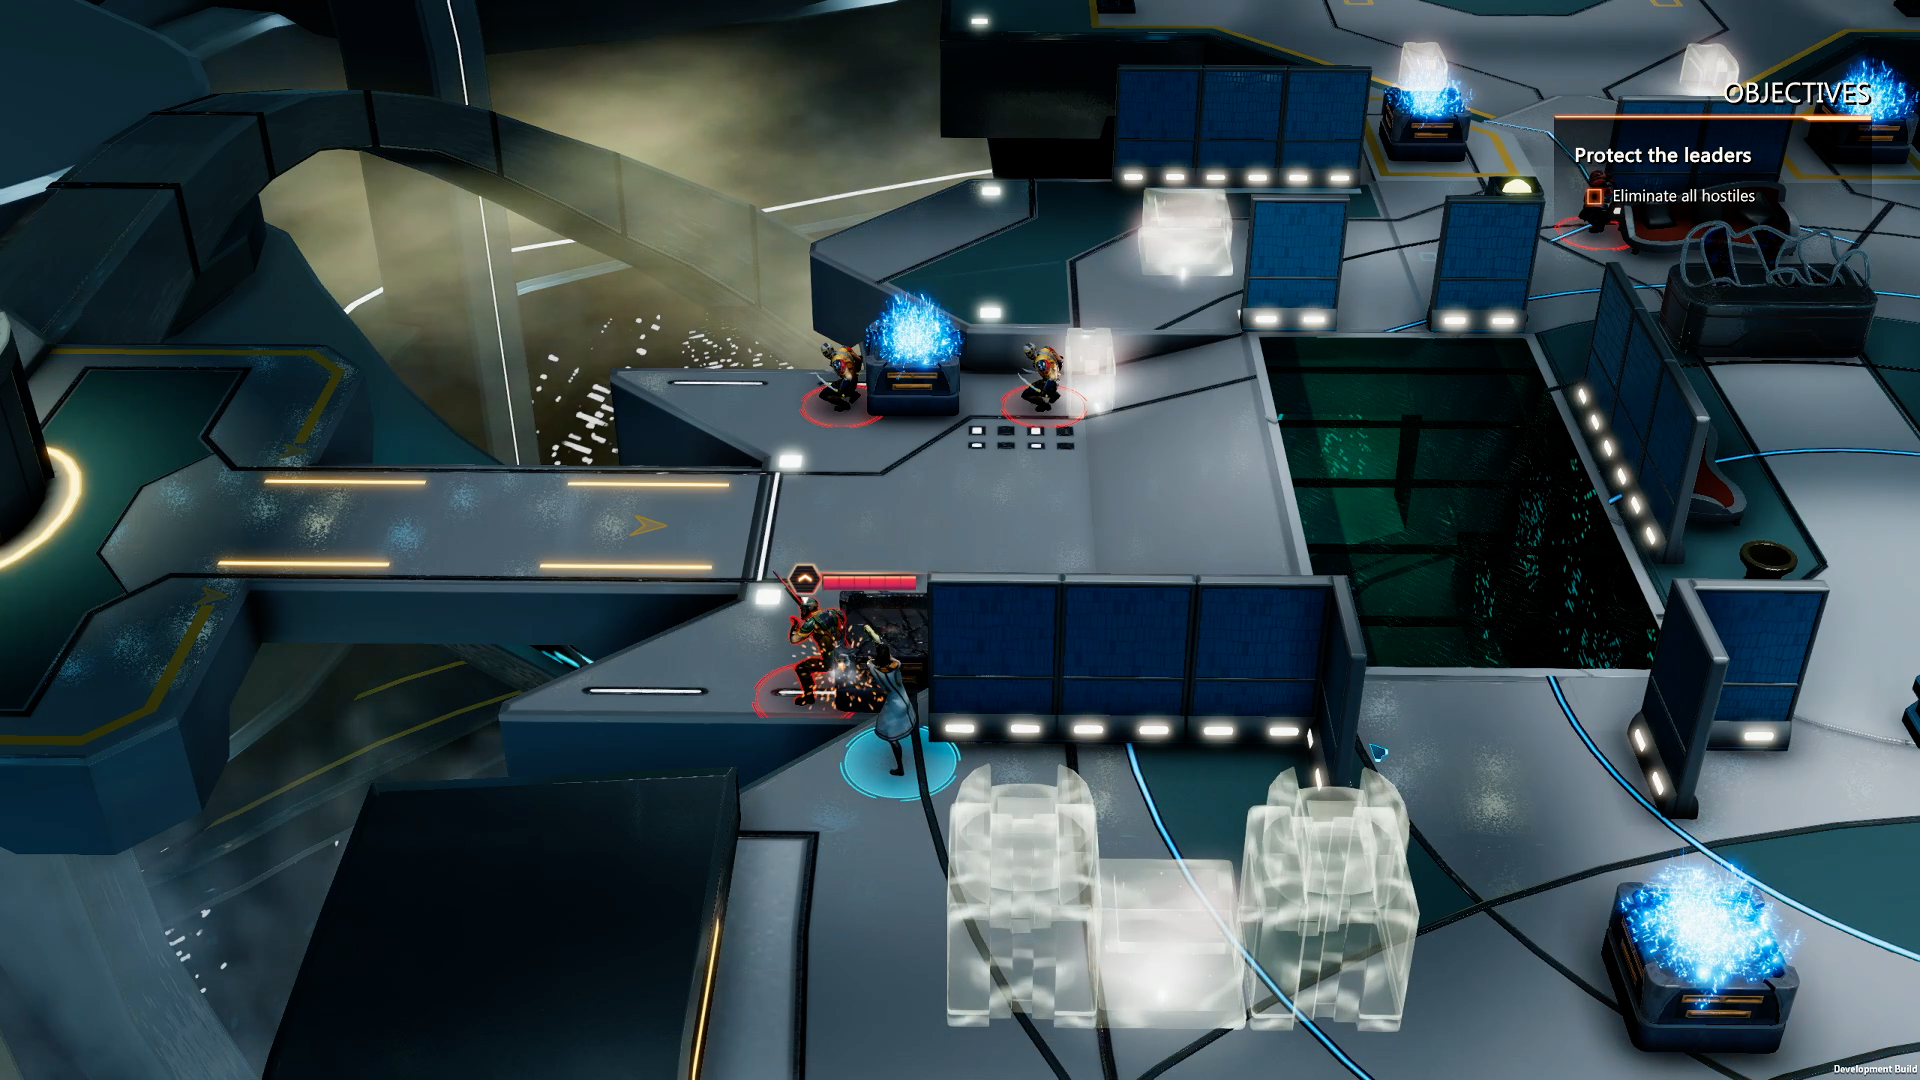 EleSpace_Reveal_Office1 copy.png